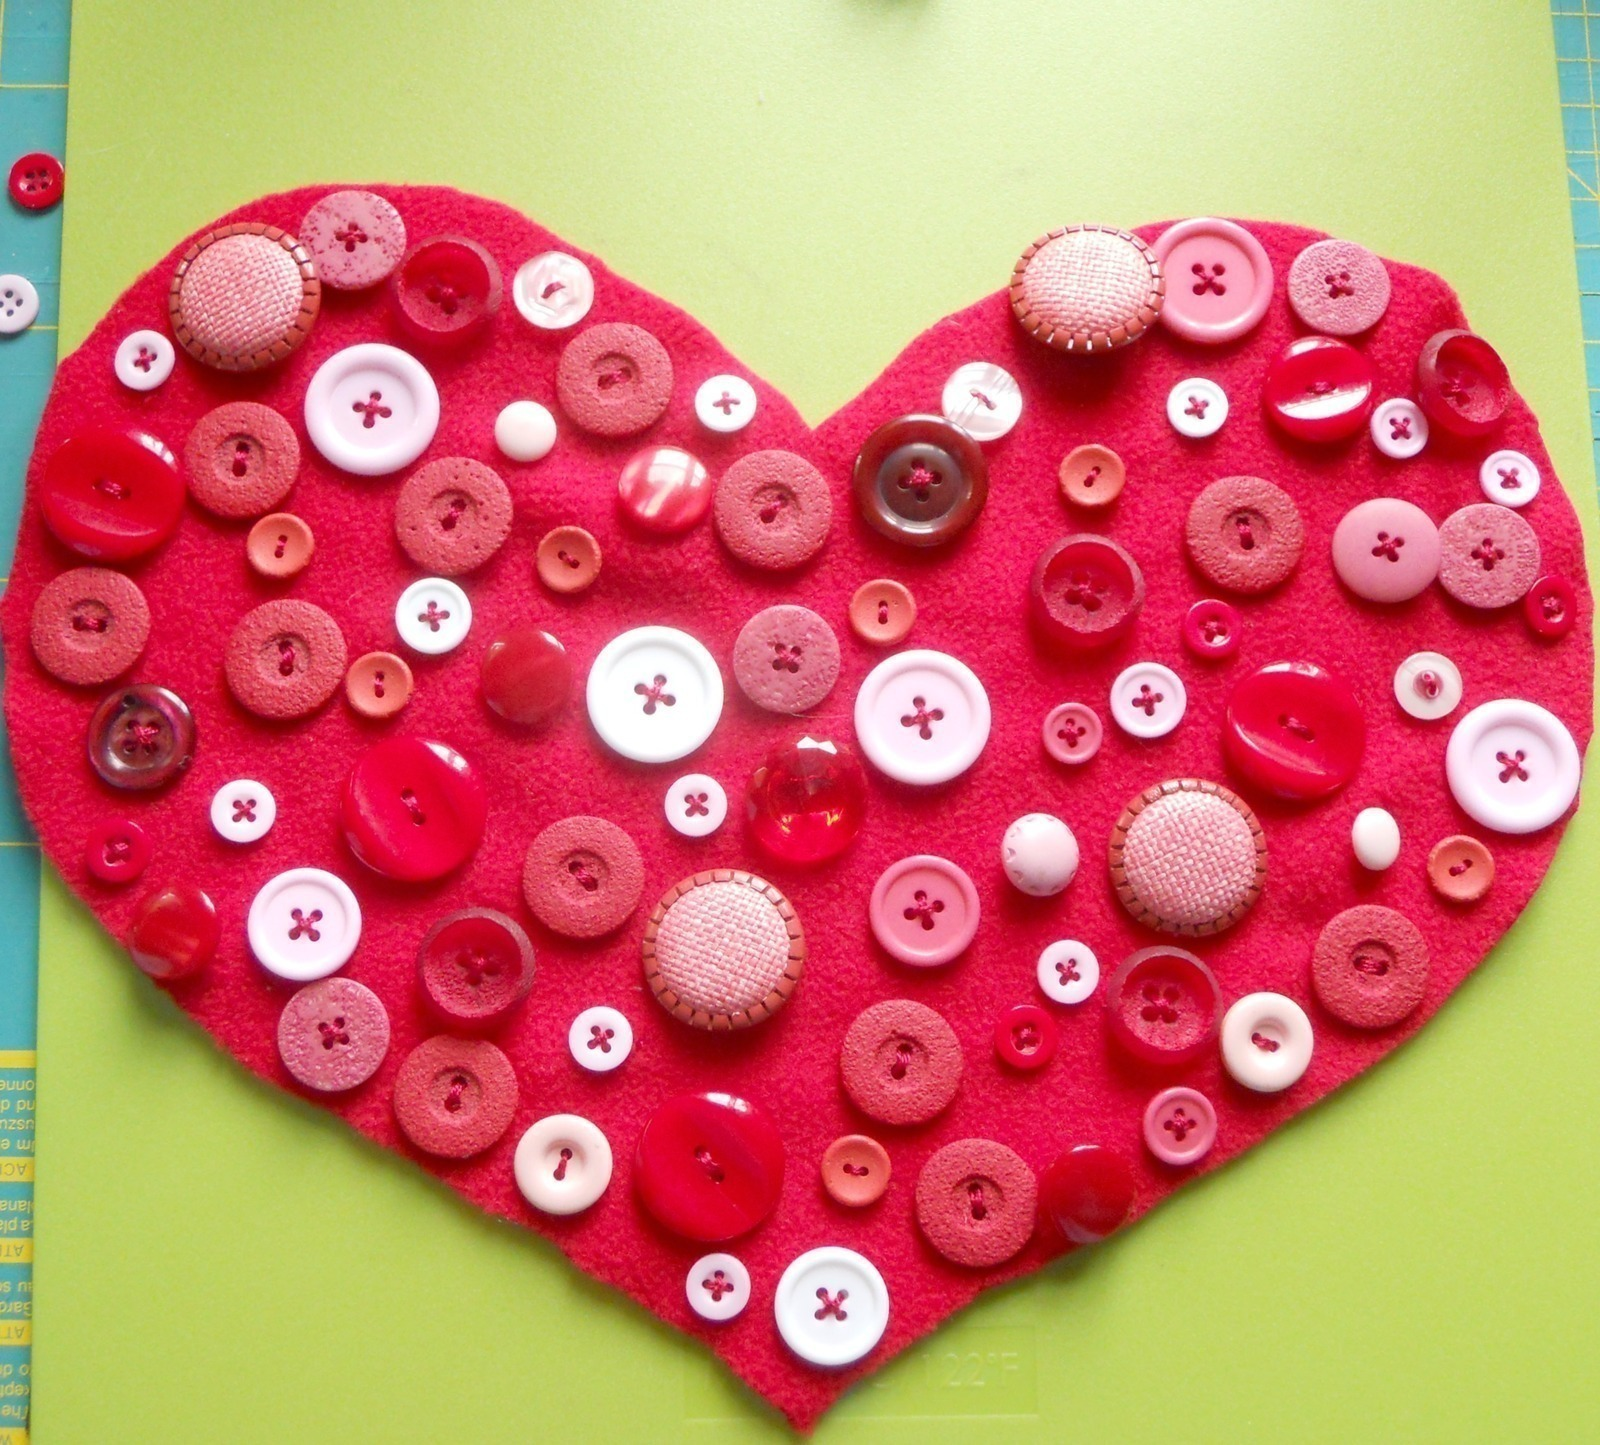 Diy Buttons Heart Pillow 183 How To Make A Stitched Cushion 183 Sewing And Embroidery On Cut Out Keep